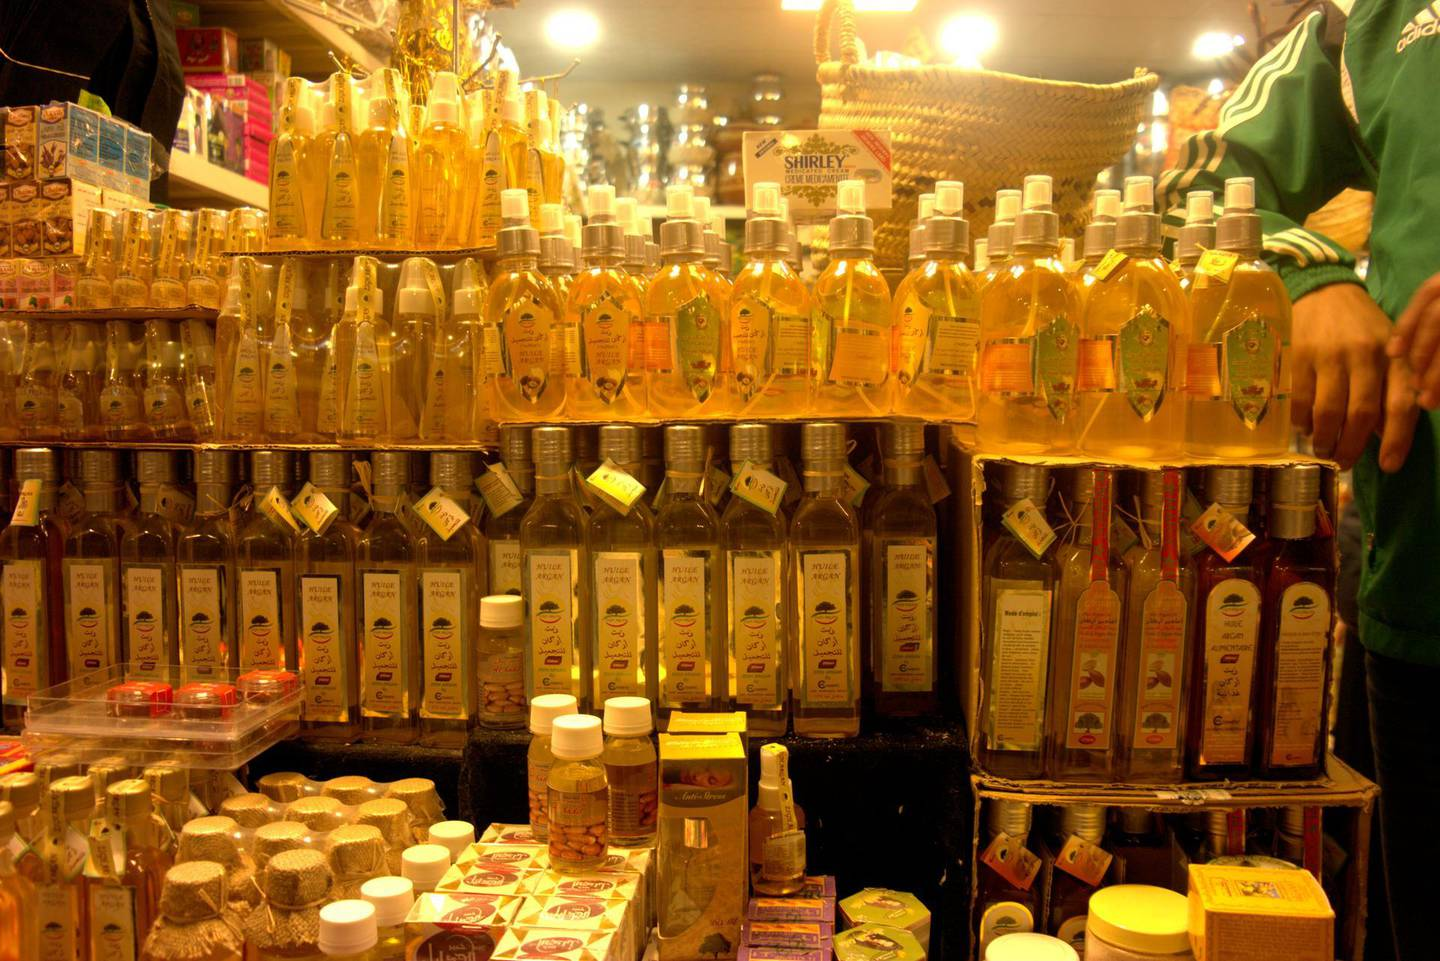 Jan 31, 2017 - Argan oil at the Morocco pavilion at Global Village. Photo by Aarti Jhurani *** Local Caption ***  Argan oil at the Morocco pavillion at Global Village. Aarti Jhurani.jpg